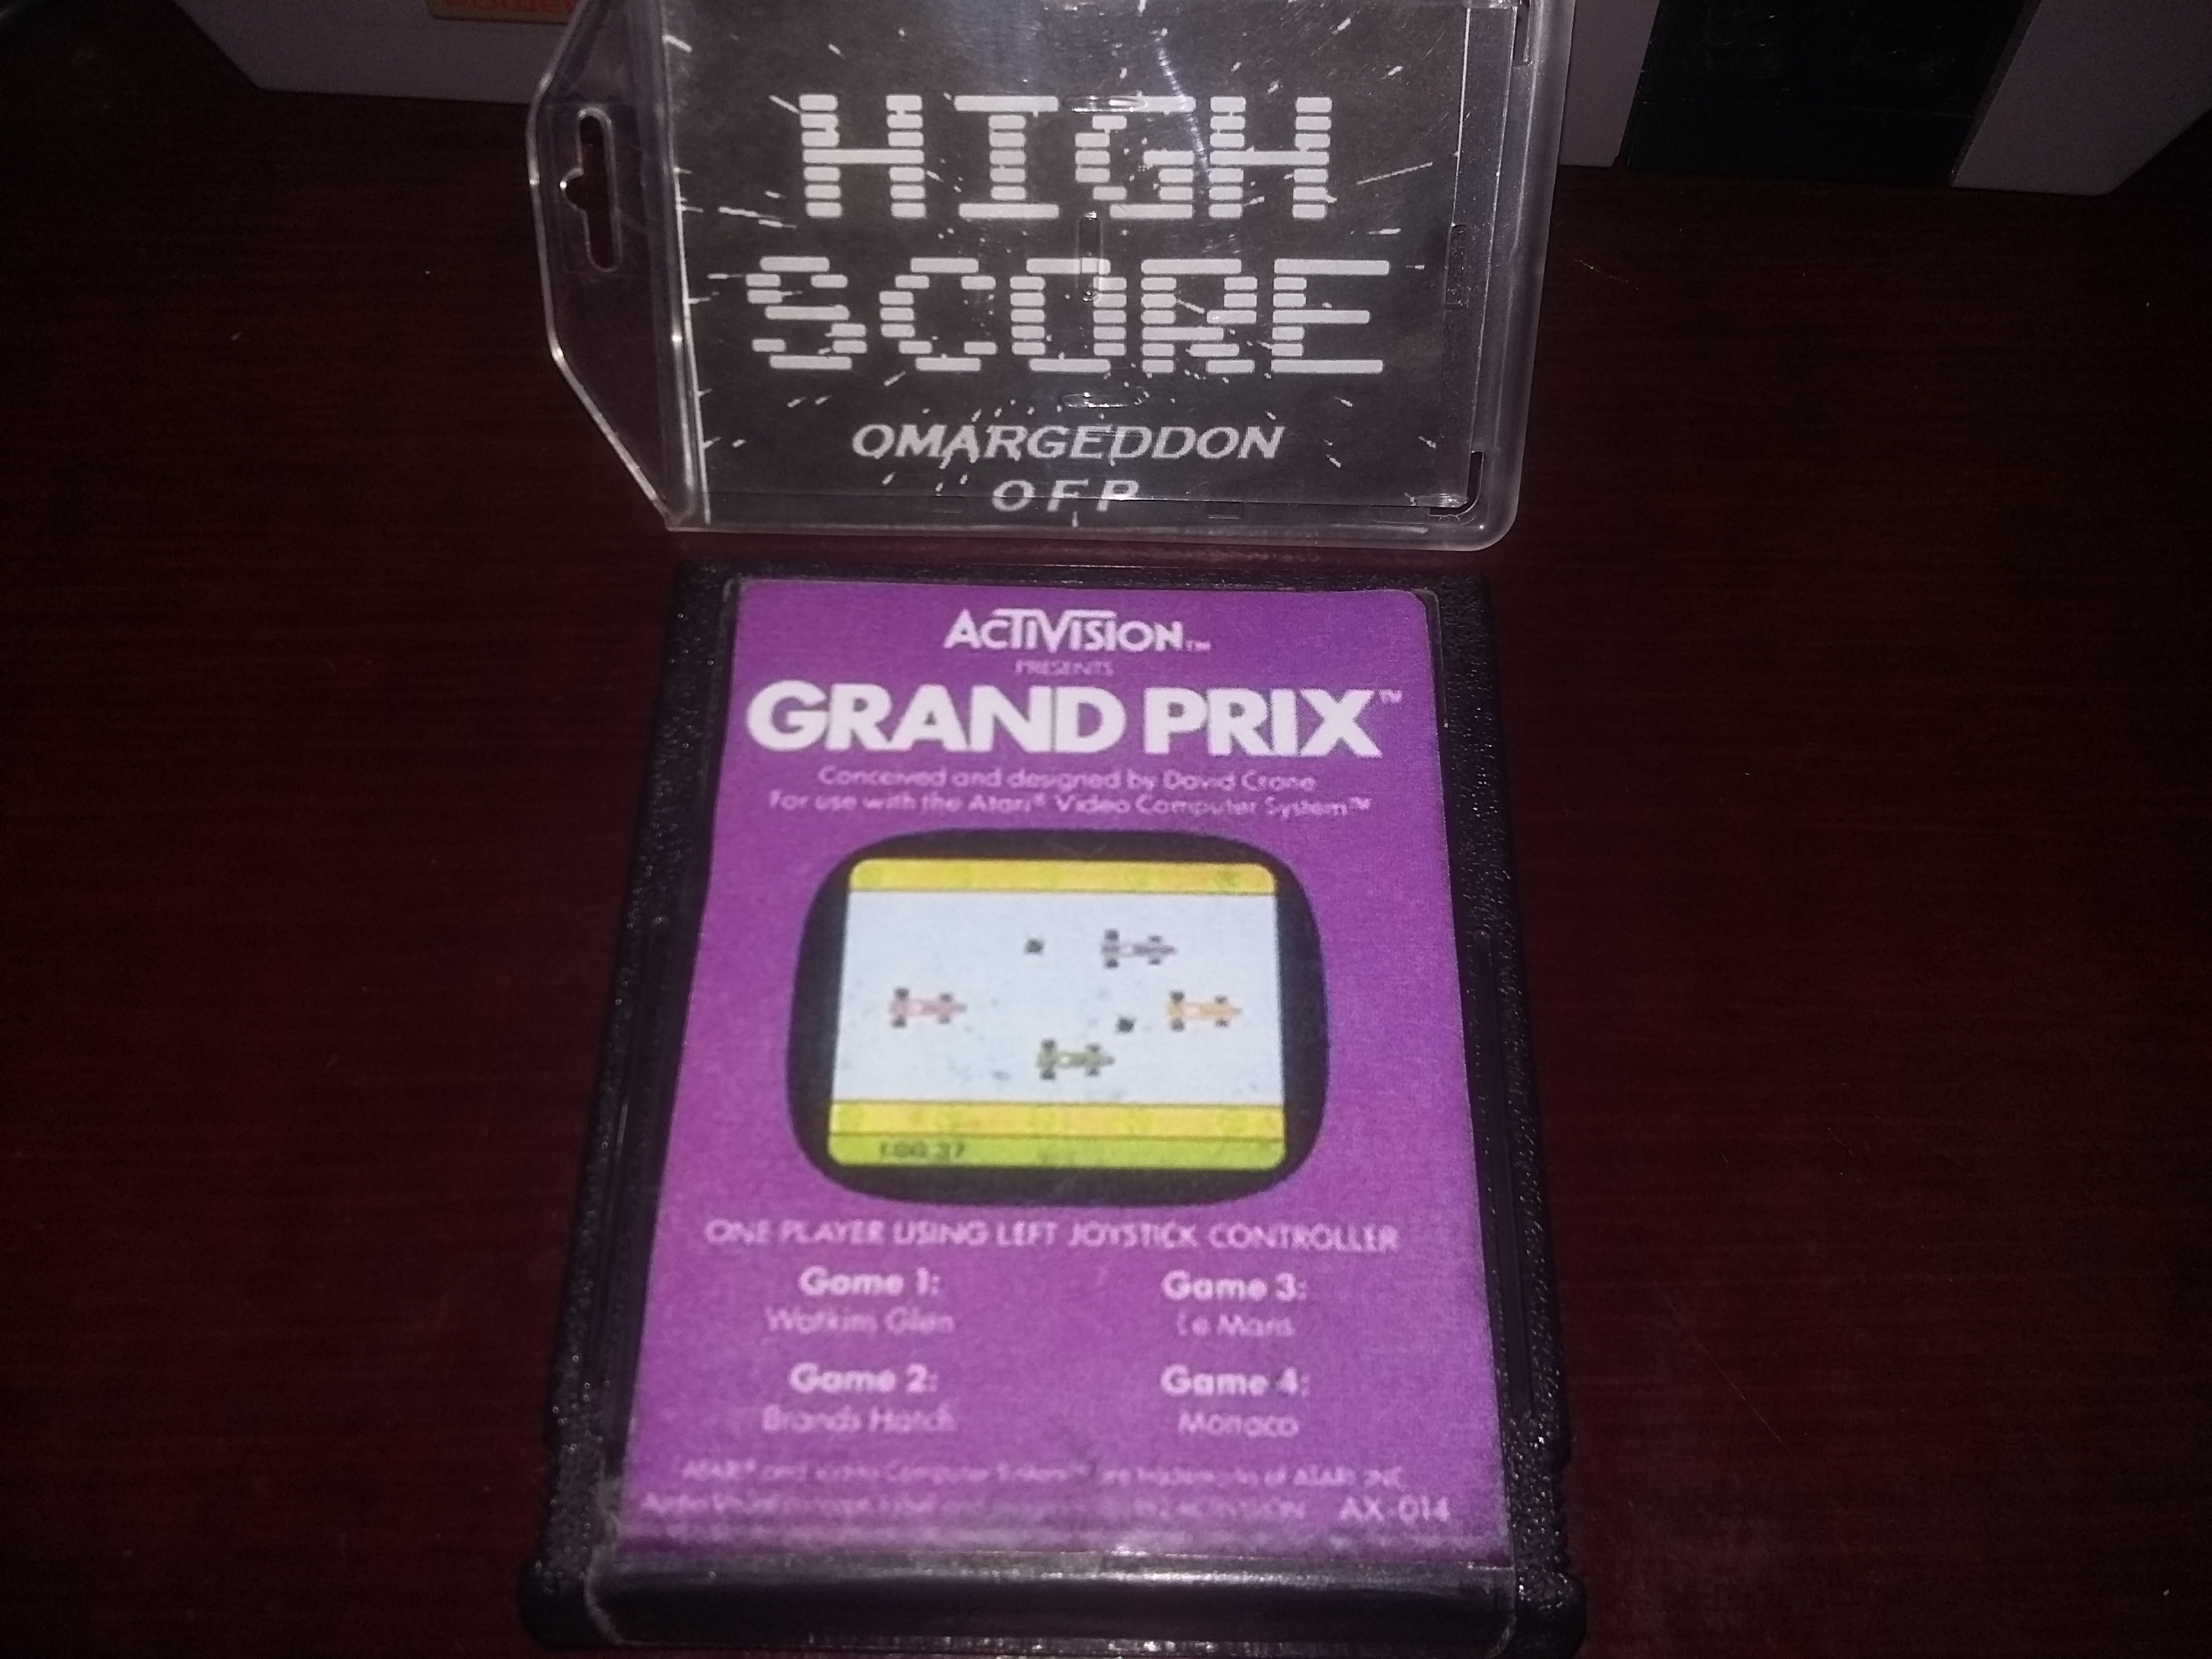 Grand Prix: Game 2 time of 0:01:14.47